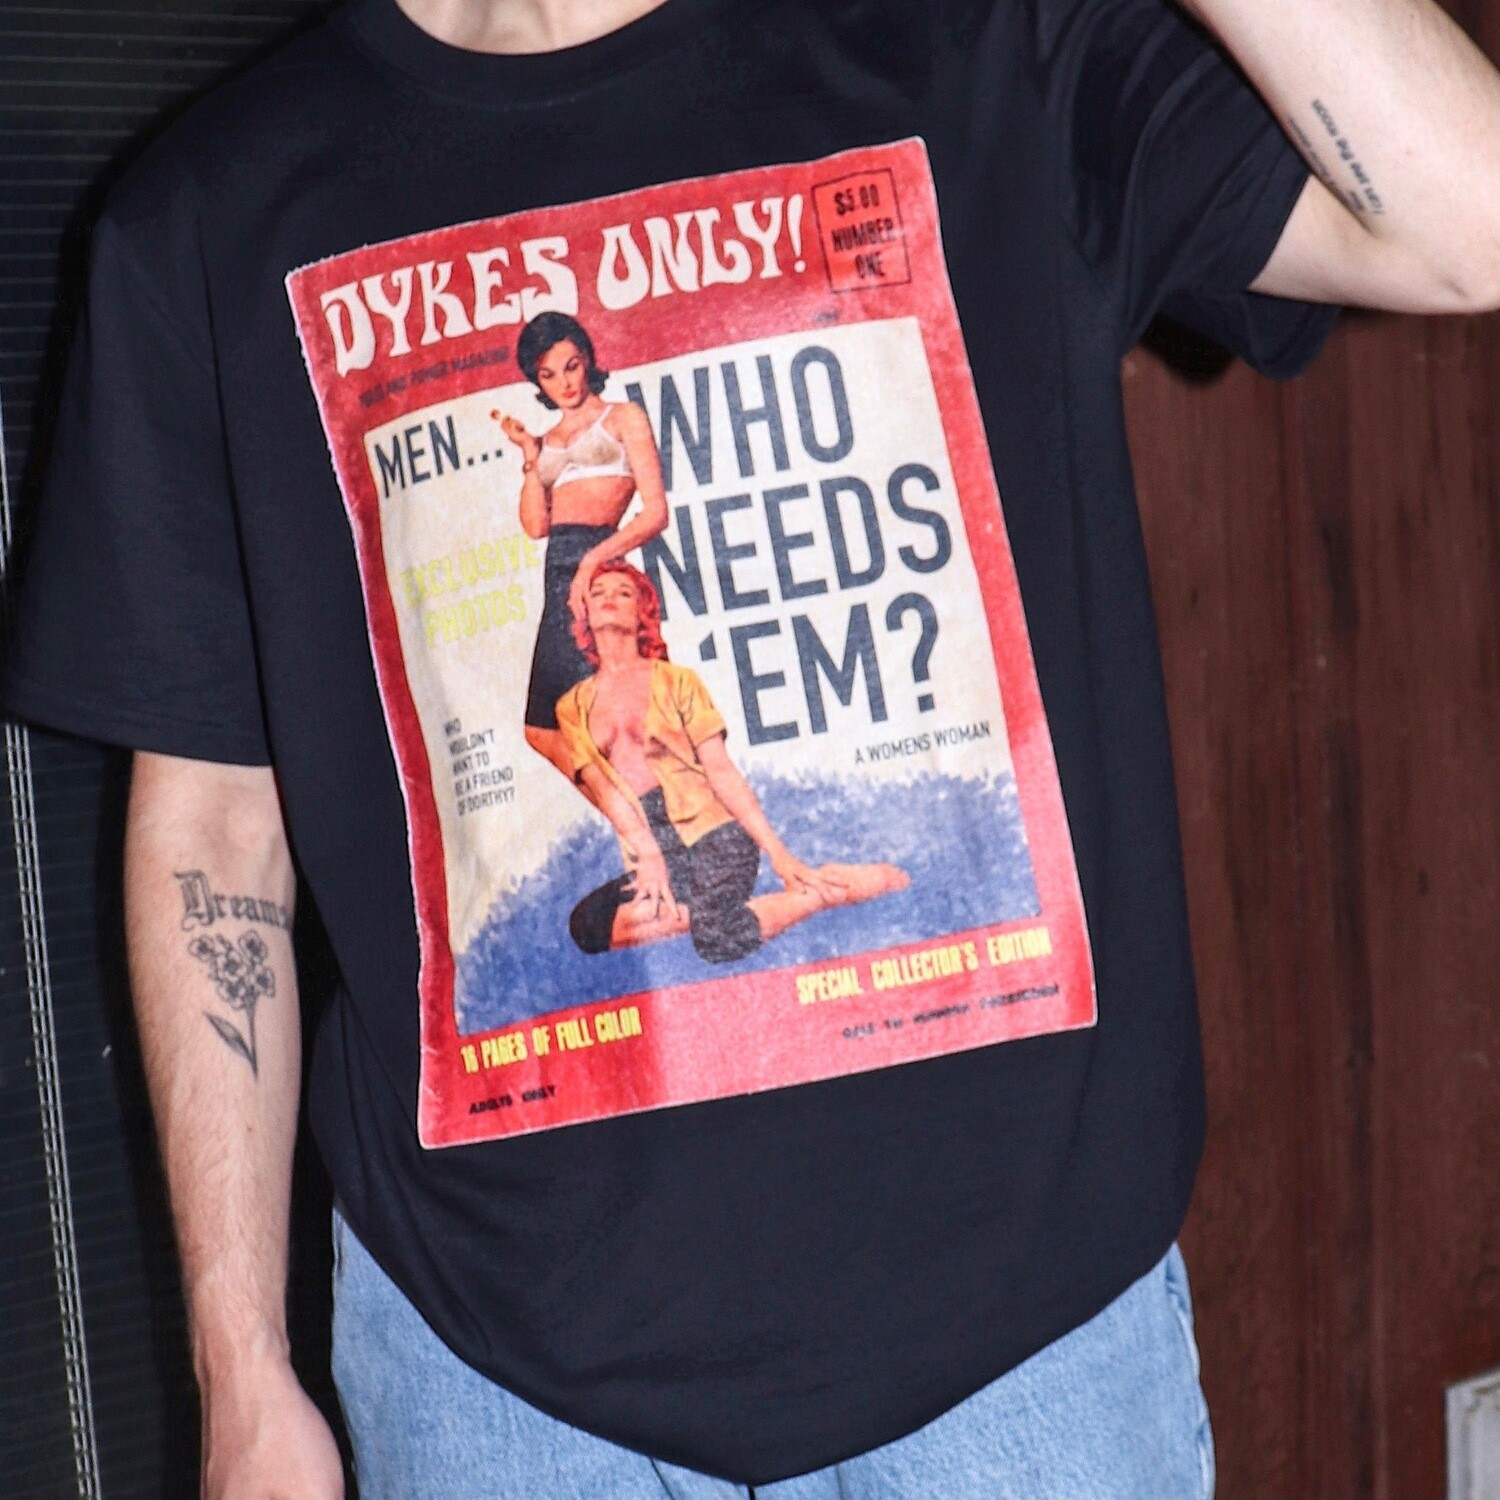 DYKES ONLY Vintage Magazine T-Shirt